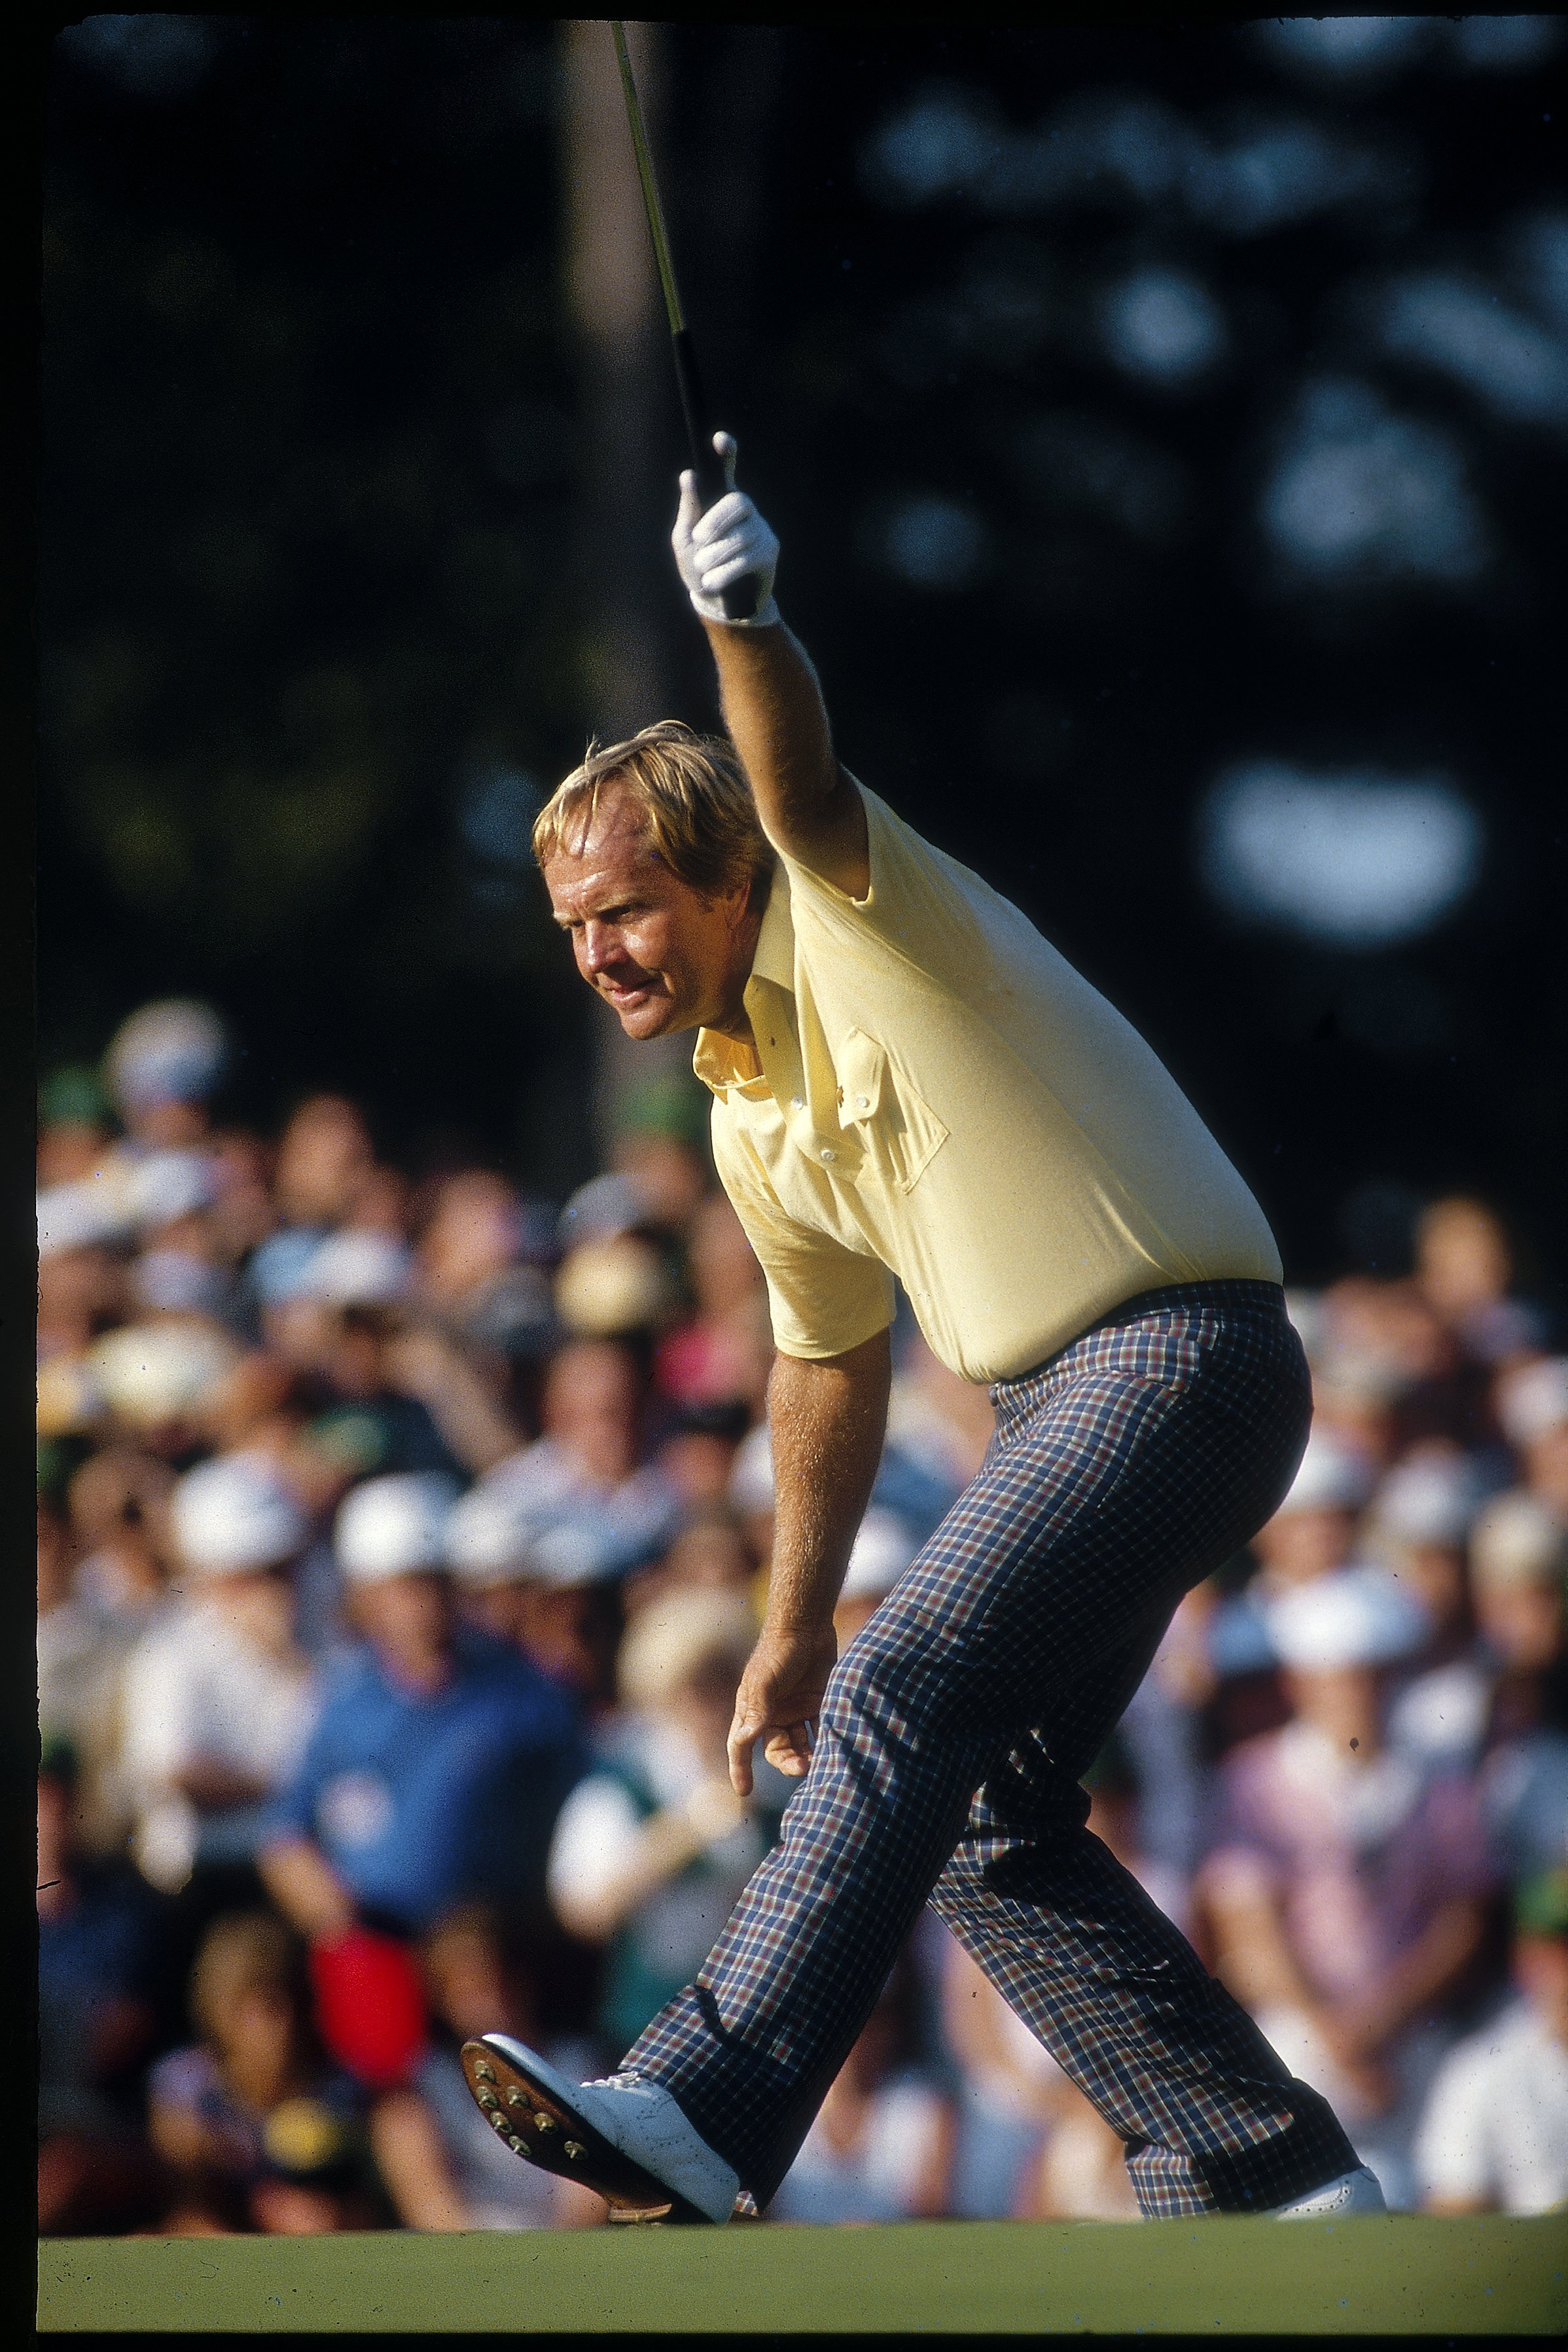 """The Bear has come out of hibernation."" Jack Nicklaus at the 1986 Masters."